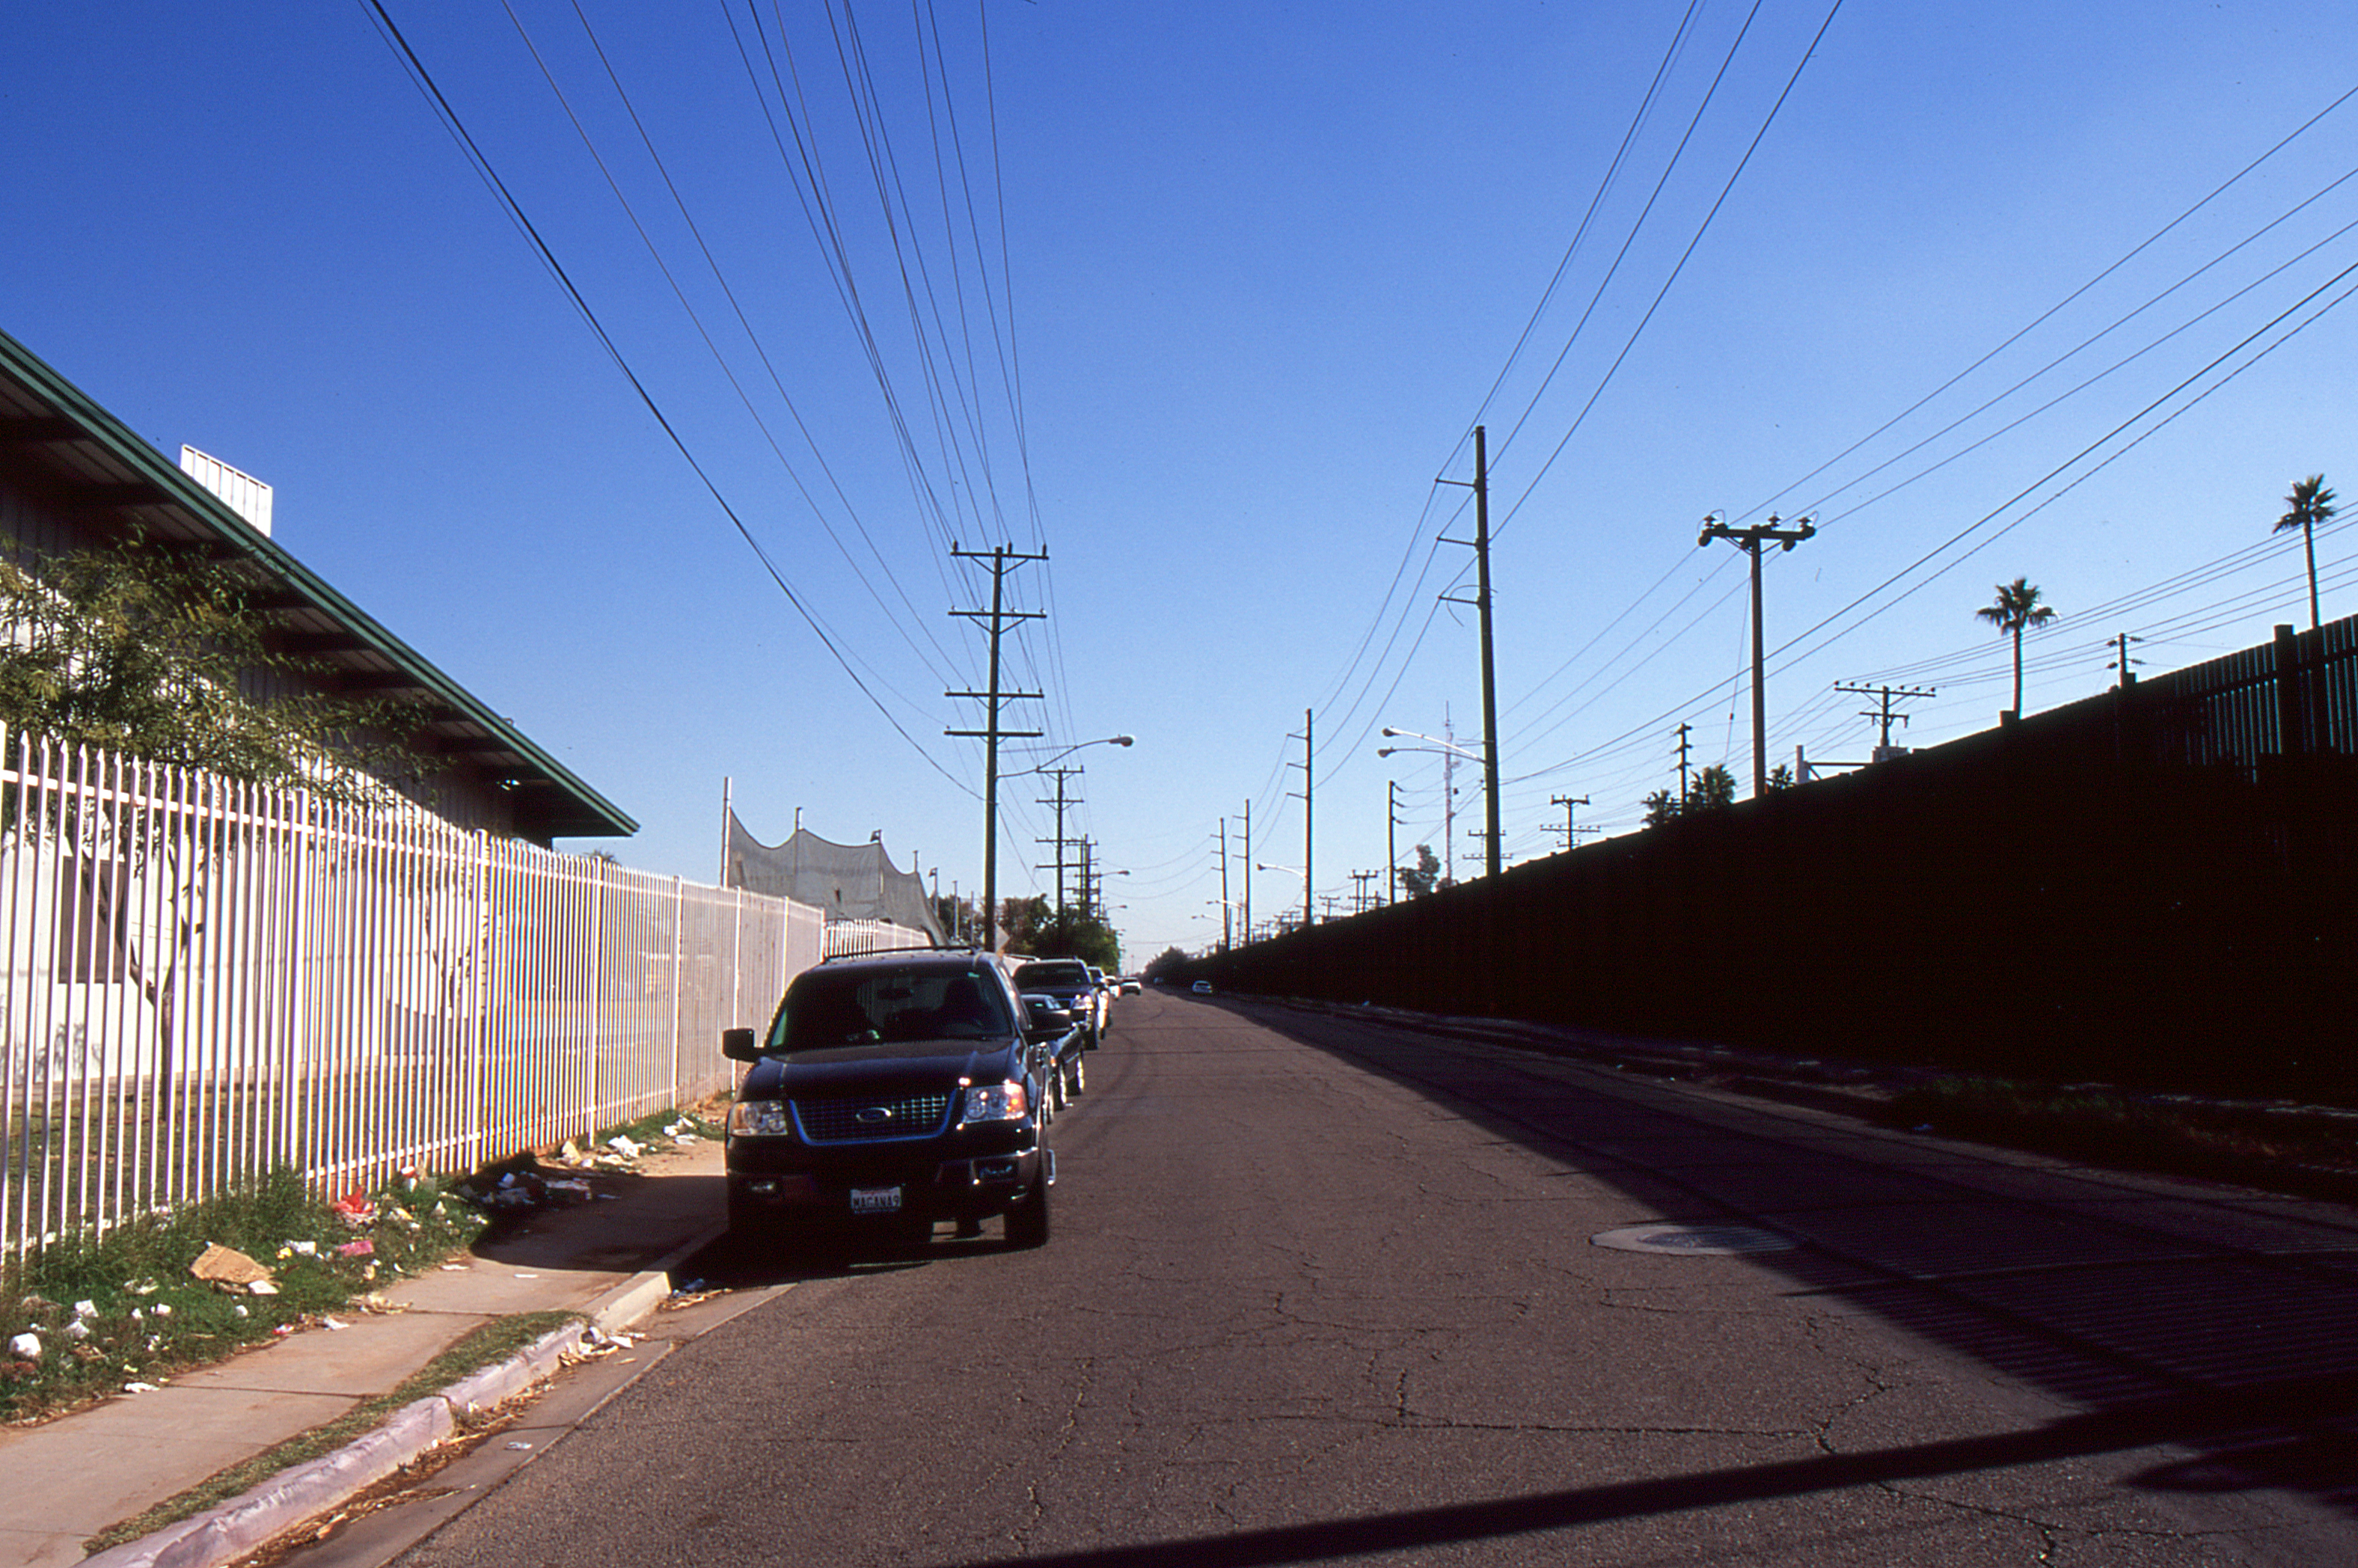 File:Calexico CA - 1st Street and border fence.jpg ...